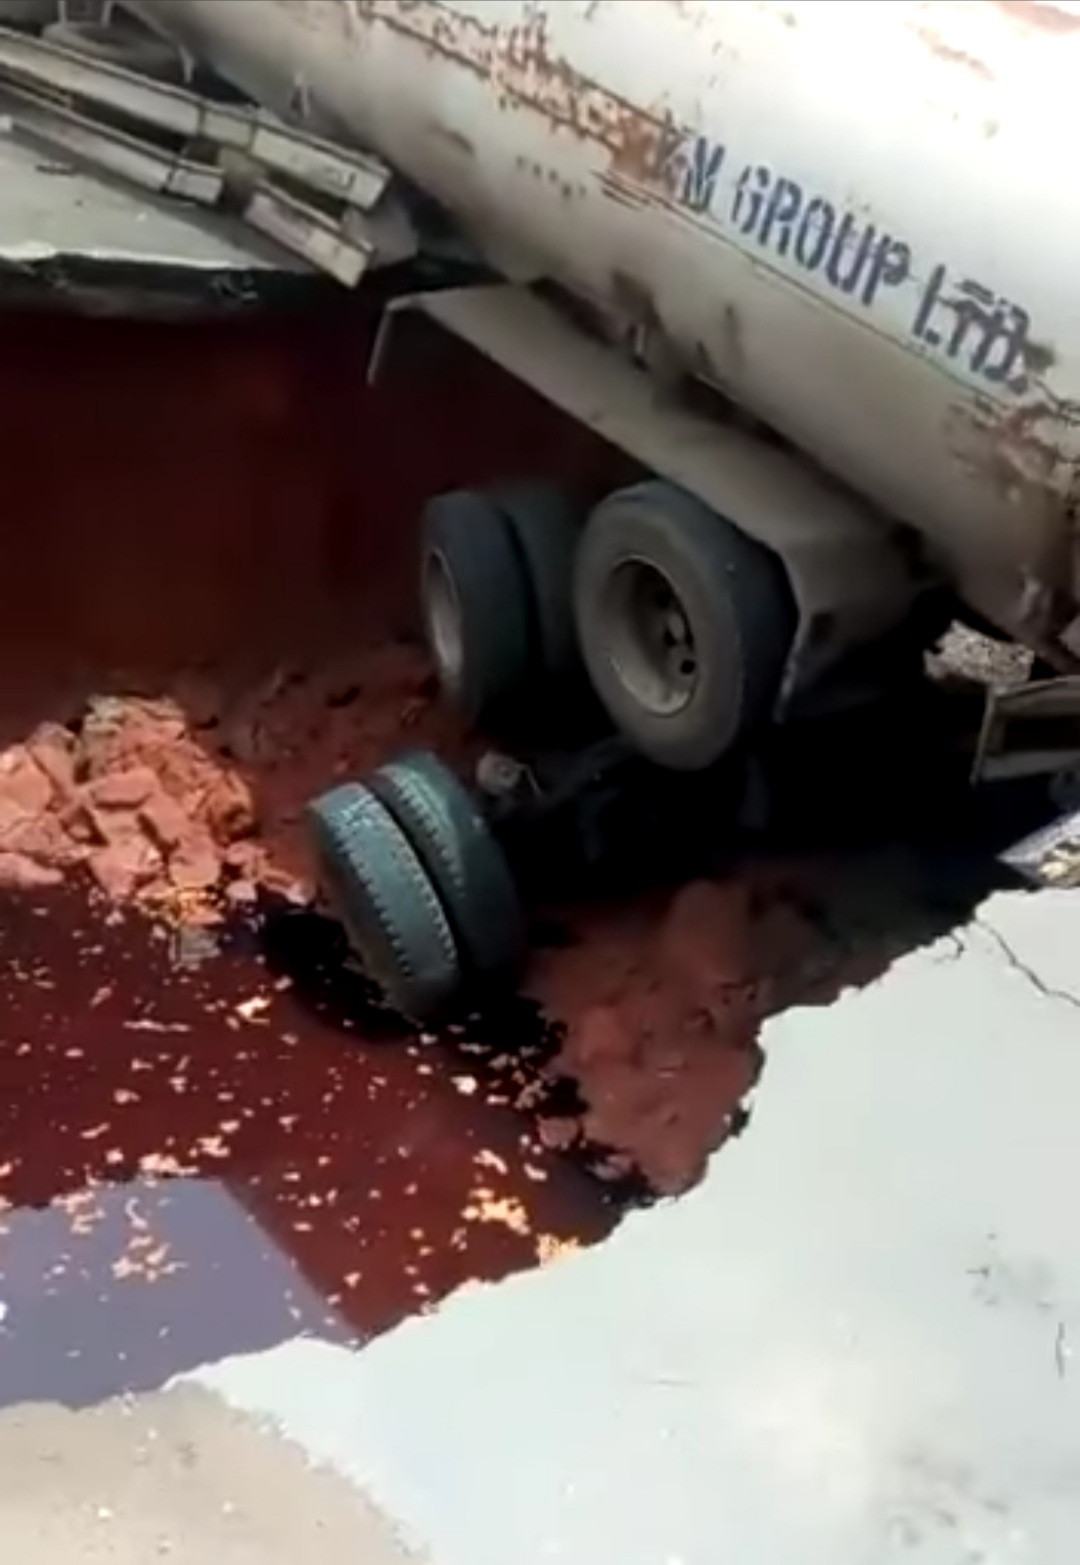 Trailer carrying diesel sinks as a newly constructed road collapses while the trailer was passing (video)